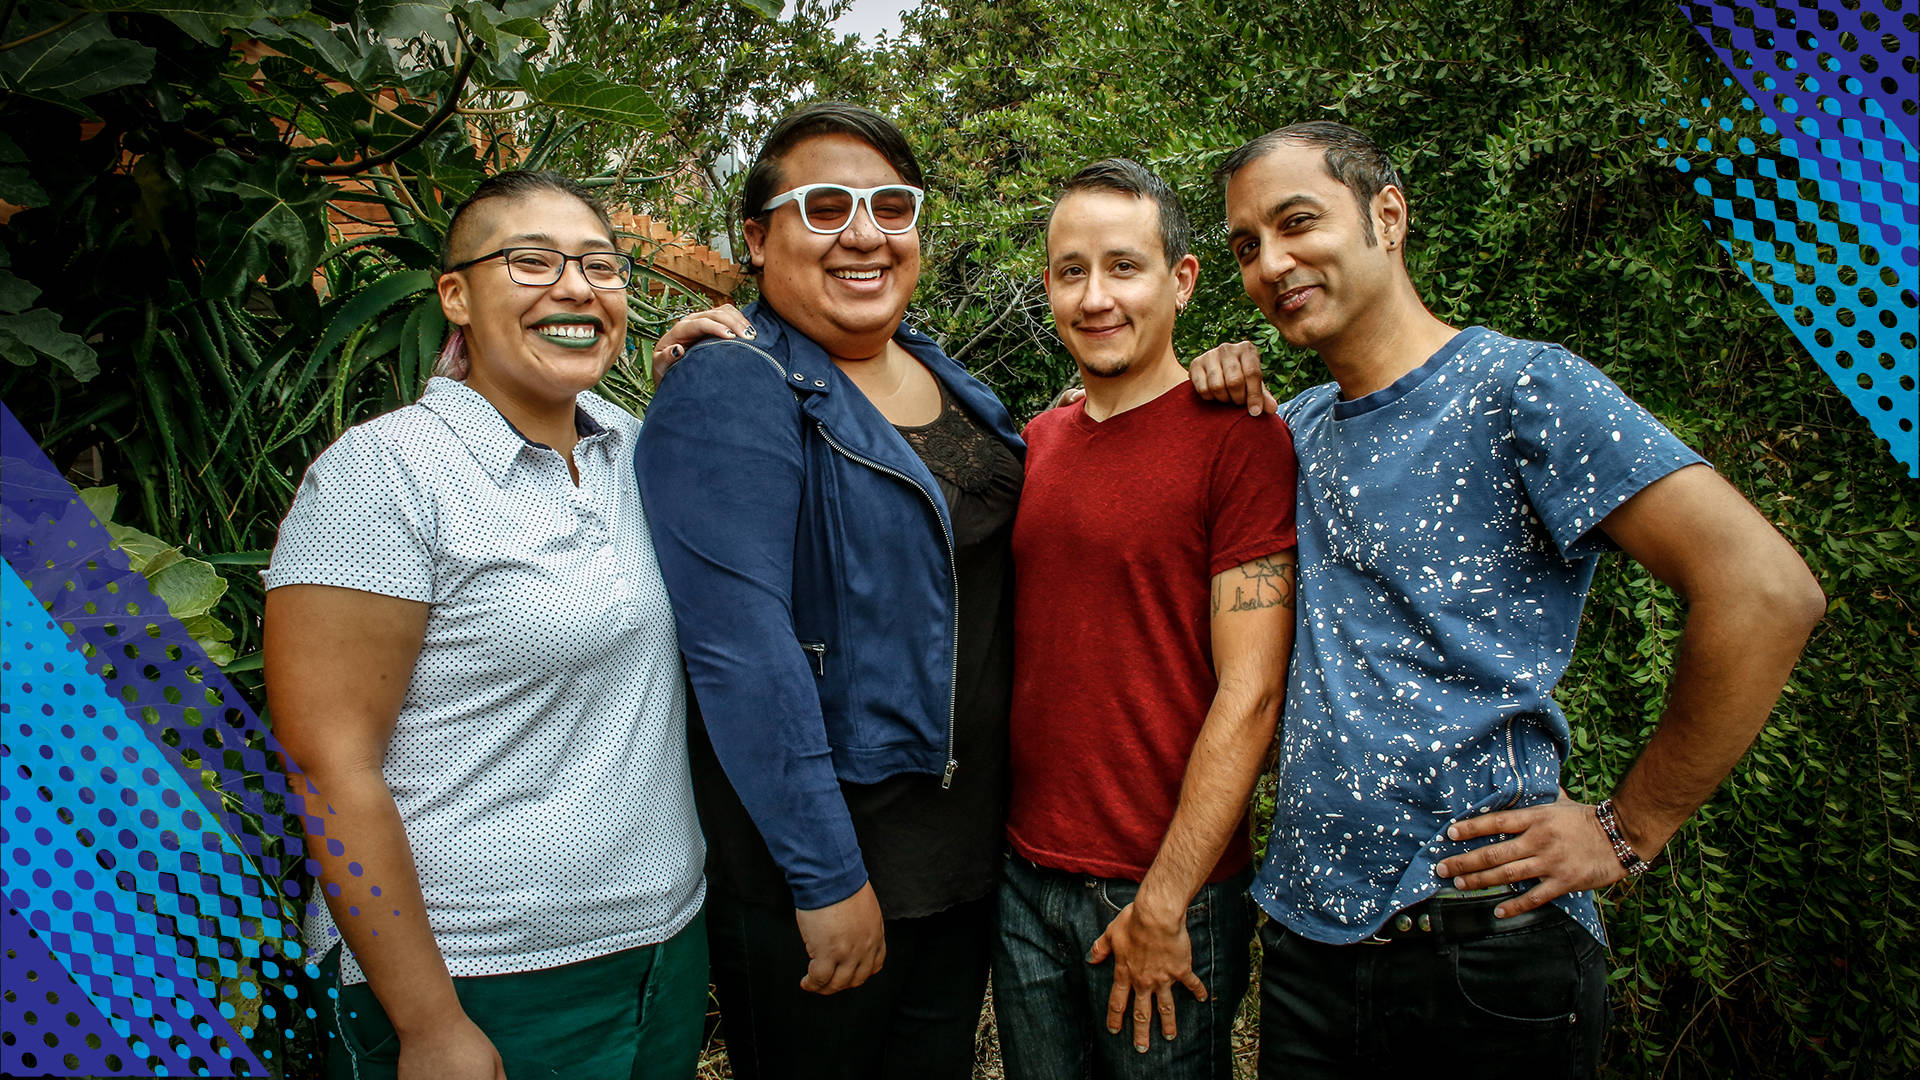 Kathrin Canton, Lexi Adsit, Q Quintero and Devi Peacock (L to R), plus Luna Merbruja (not pictured) are the core leadership of Peacock Rebellion.  Jean Melesaine